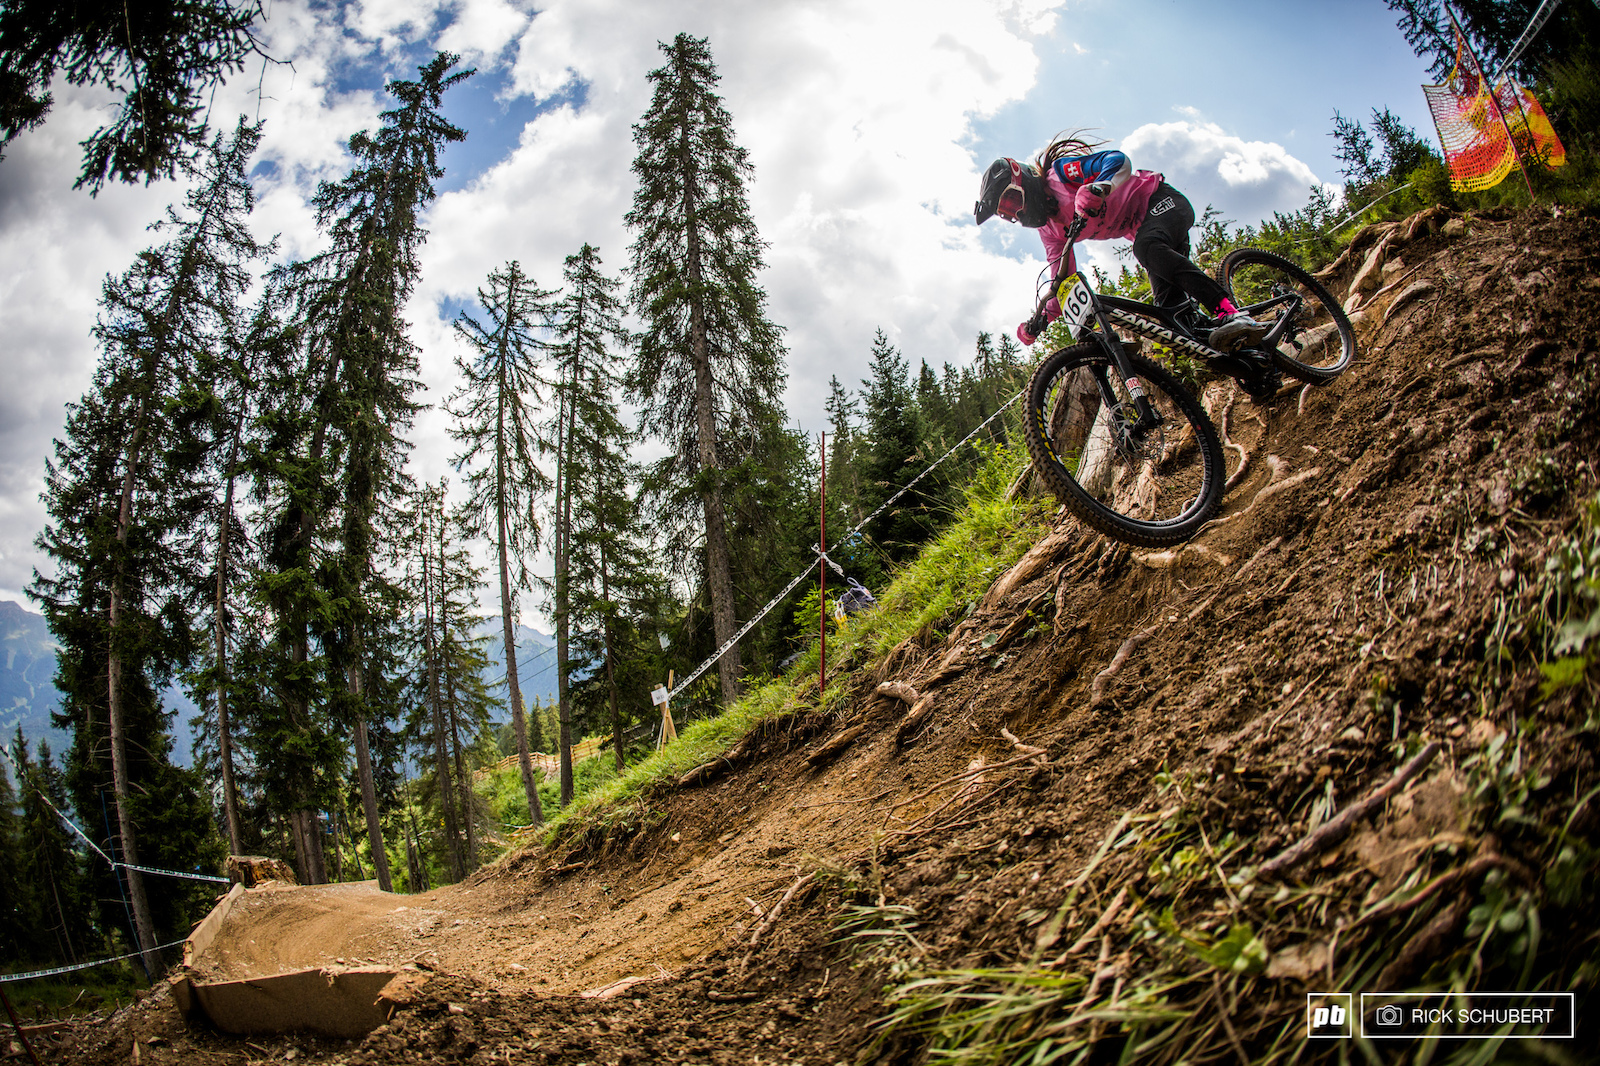 A new section to previous years made things exciting for the riders